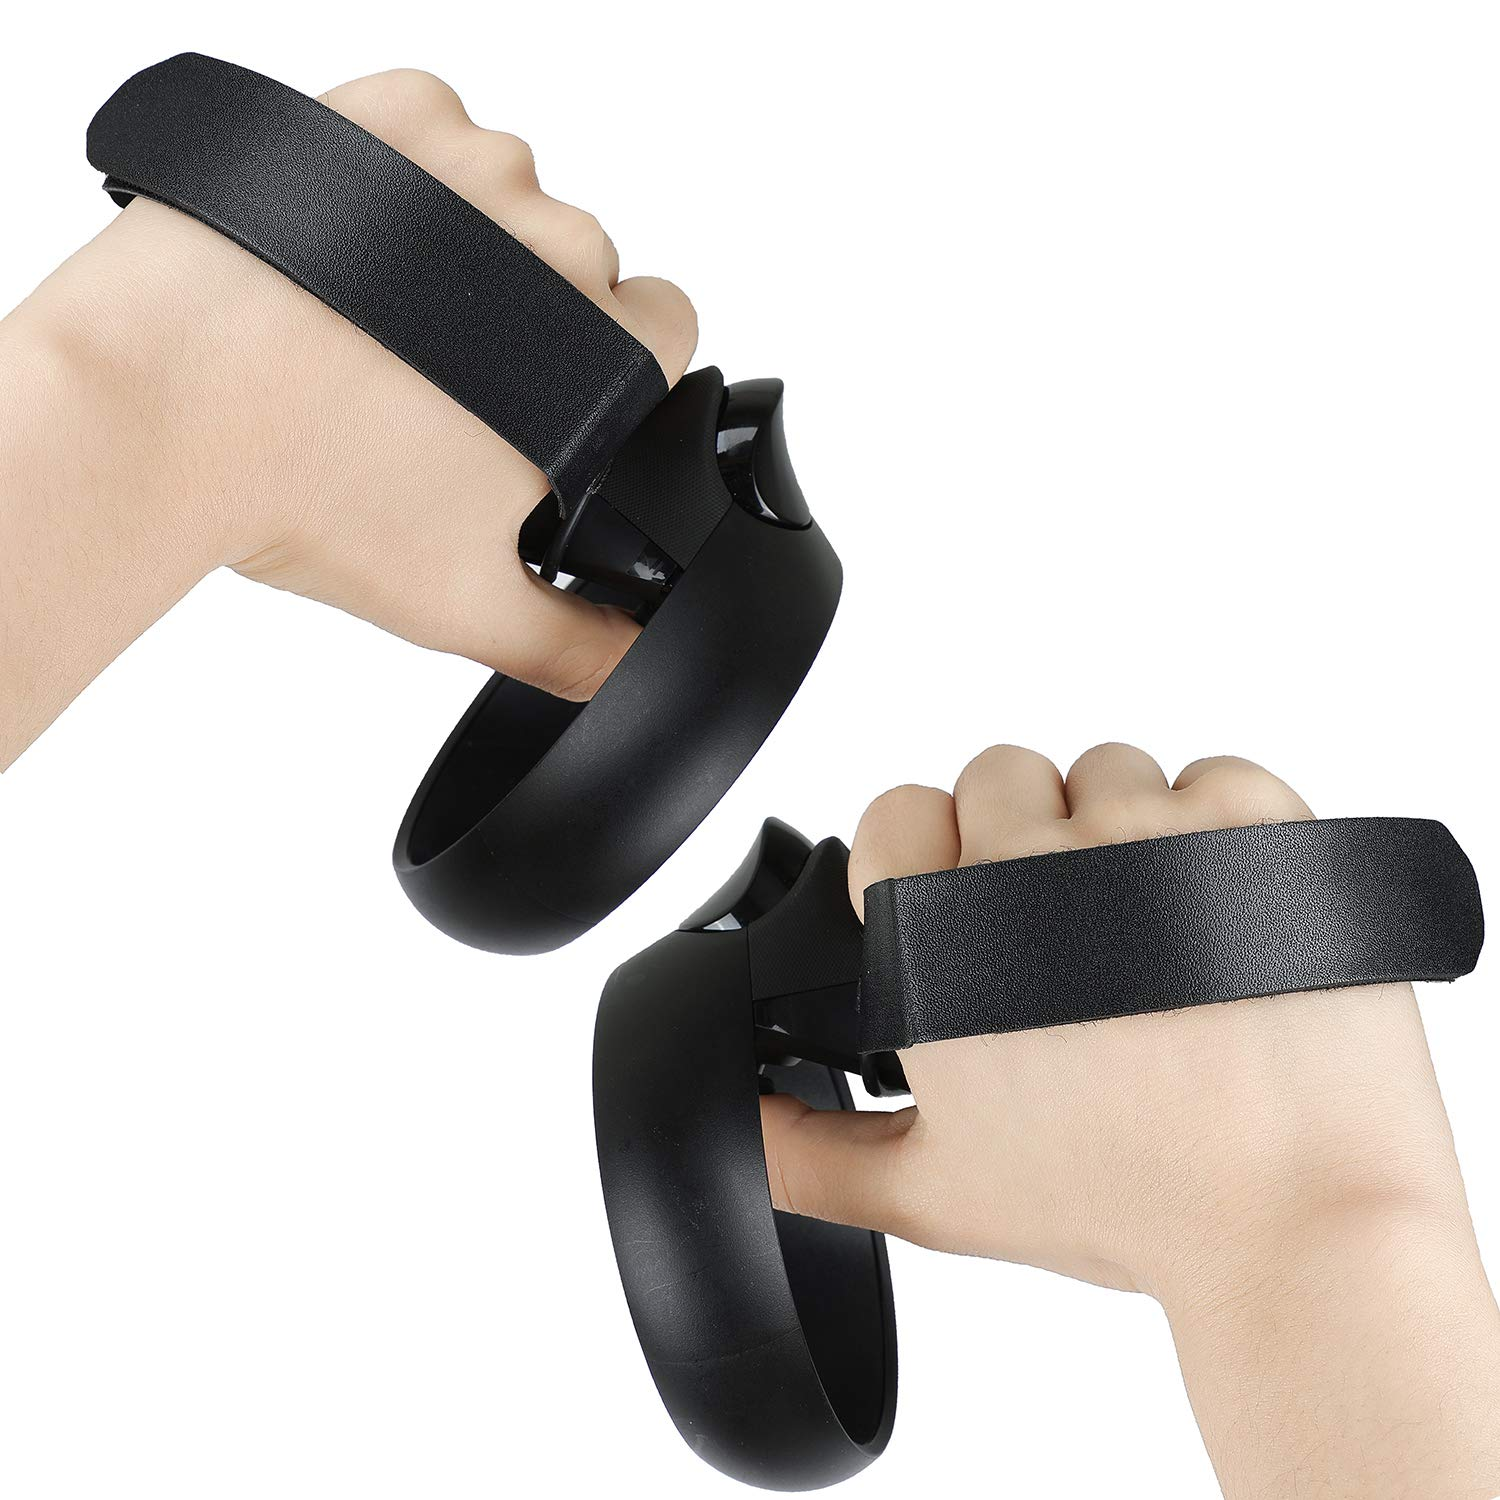 Black Premium Gel Shell Silicone Grip Covers for Oculus Rift S Traction Diamonds Skin Set Esimen Skin Cover for Oculus Quest Controller